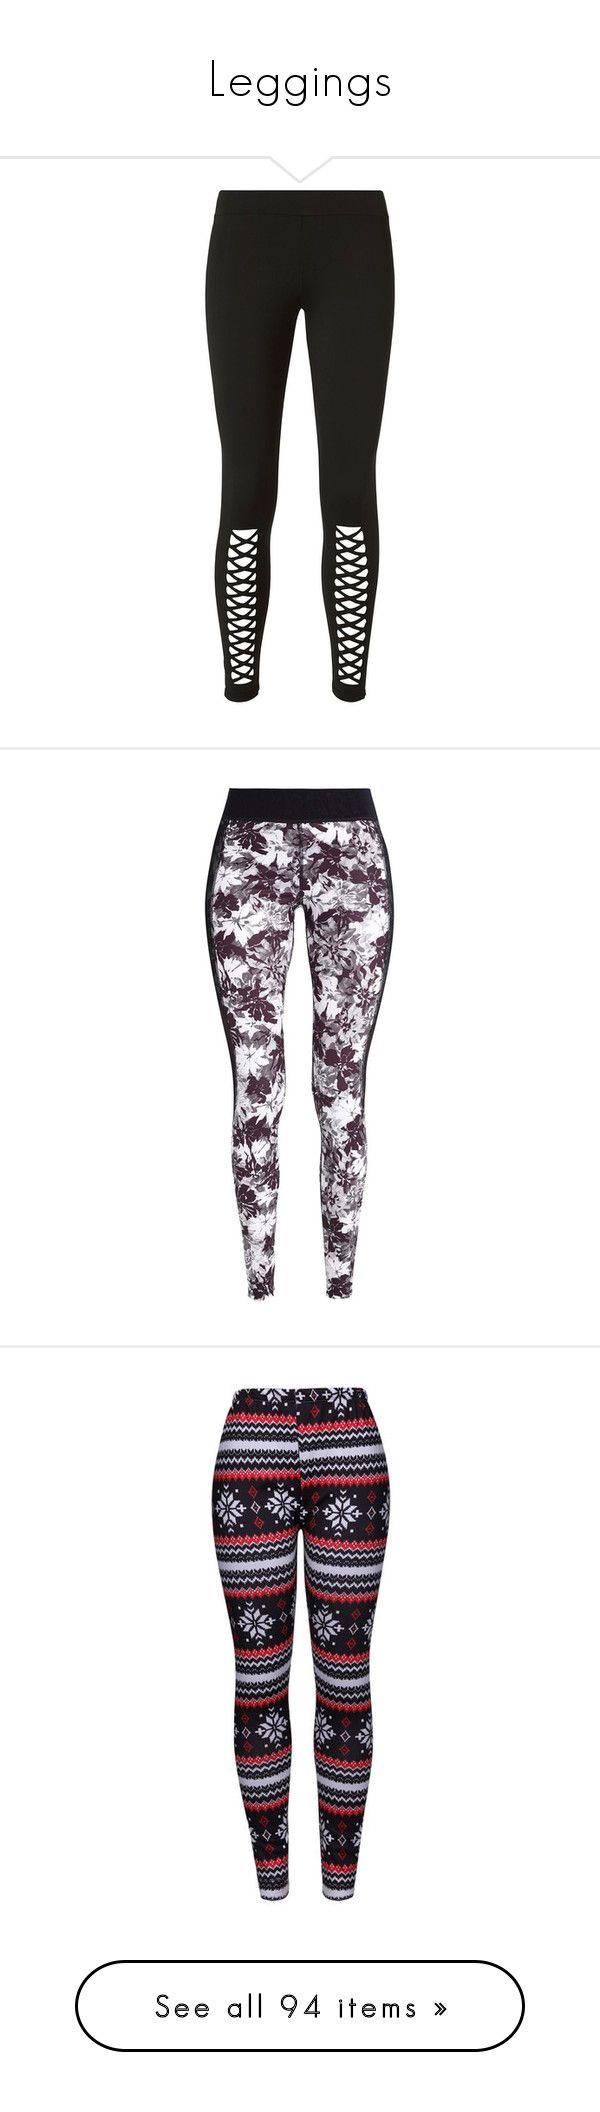 """Leggings"" by vampirekitty34 ❤ liked on Polyvore featuring pants, leggings, topshop, black, ankle length pants, logo pants, ankle length leggings, topshop trousers, topshop leggings and elastic waistband pants"